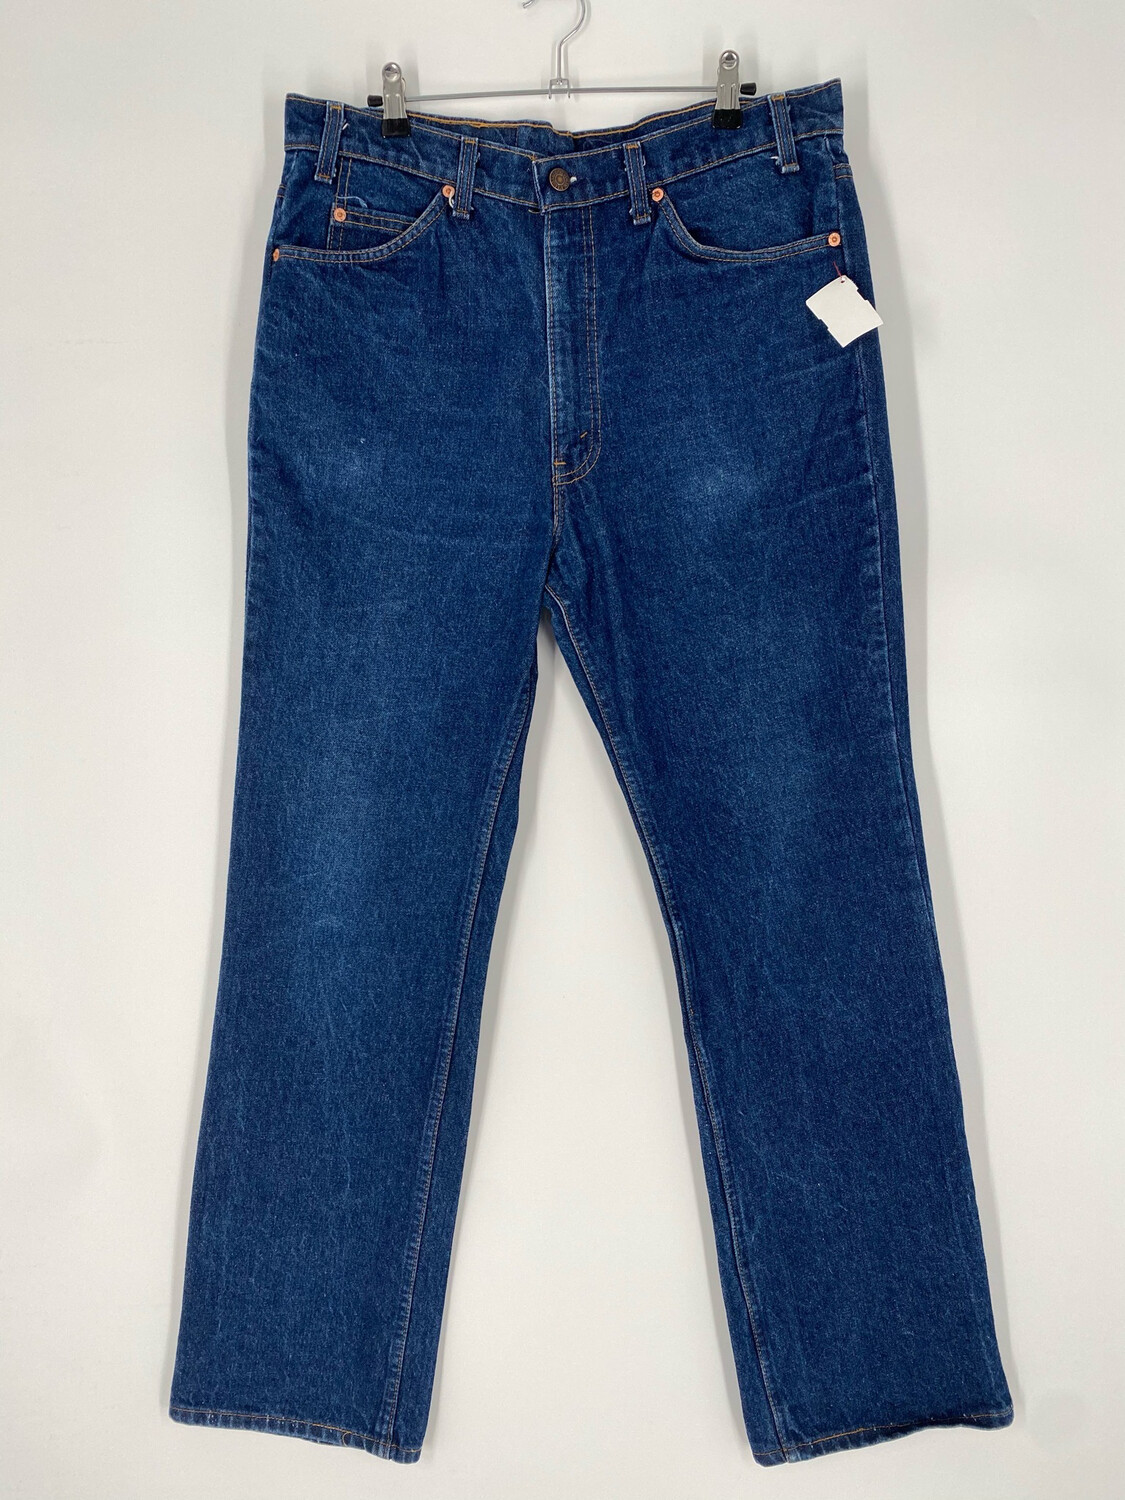 Levi's 517 Relaxed Fit Jean Size 36